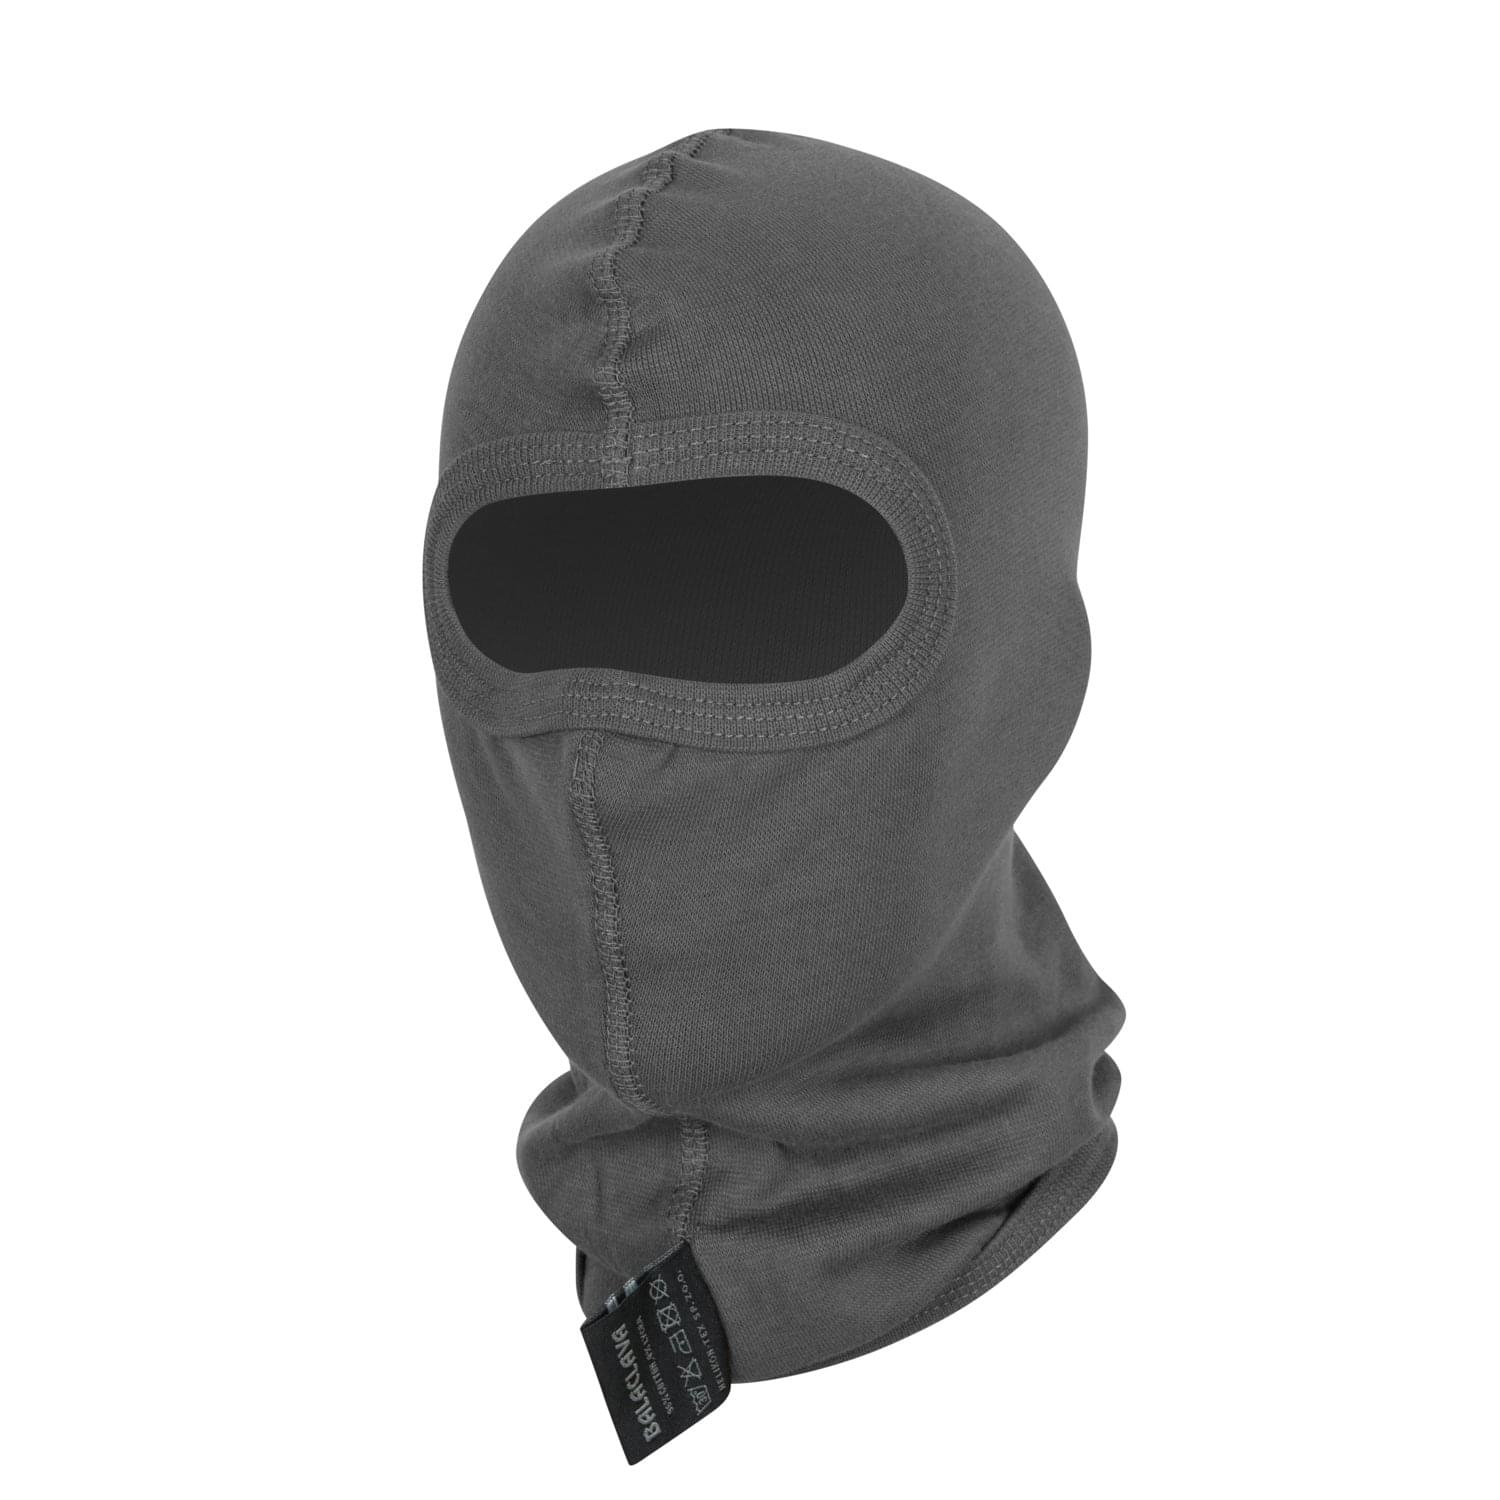 BALACLAVA - COTTON - Shadow Gray